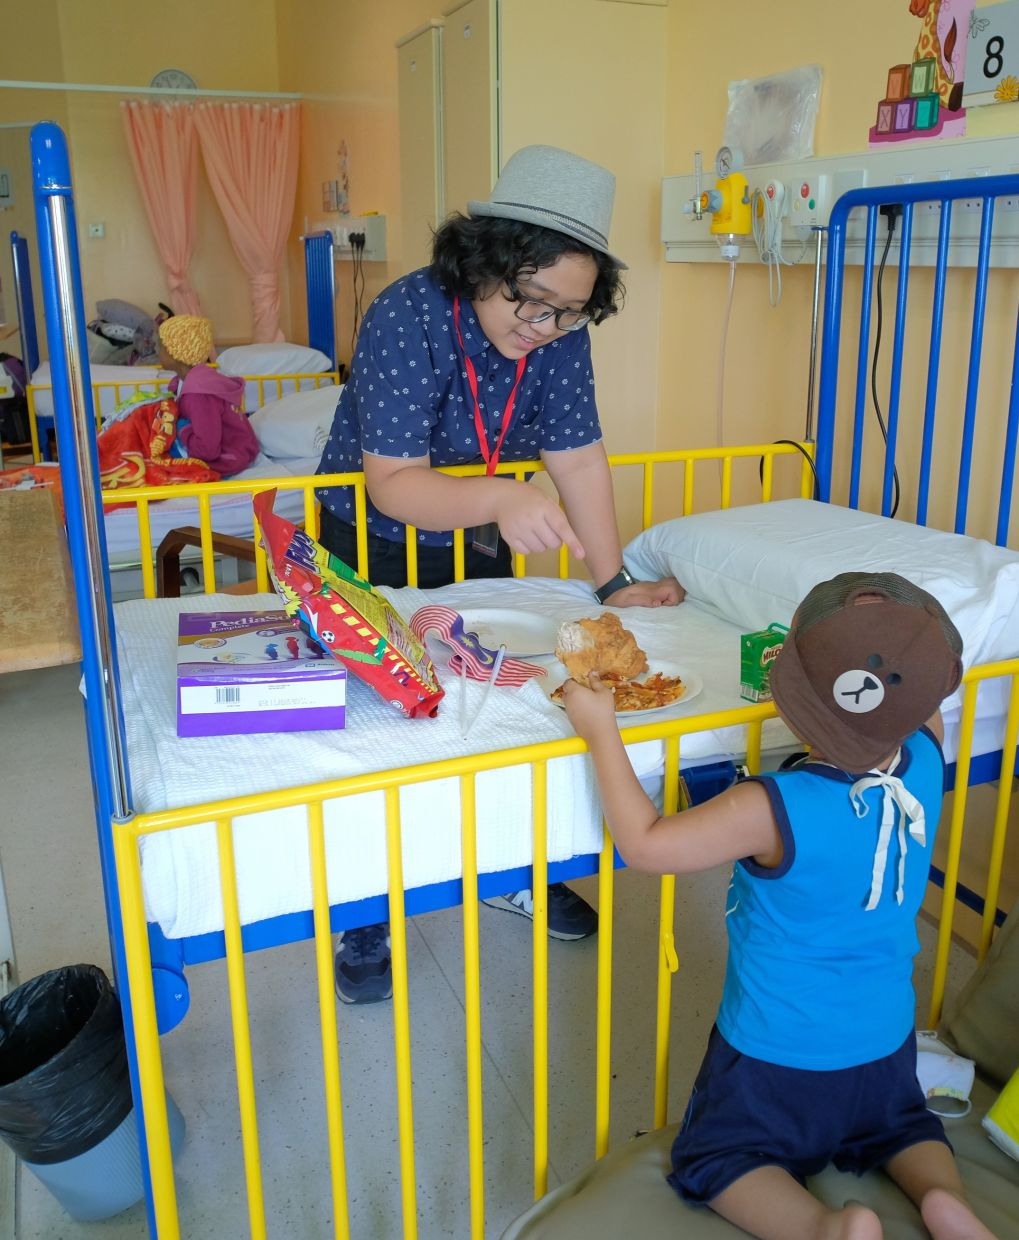 Danish also regularly provides emotional support to young cancer patients at a hospital in Kuala Lumpur.